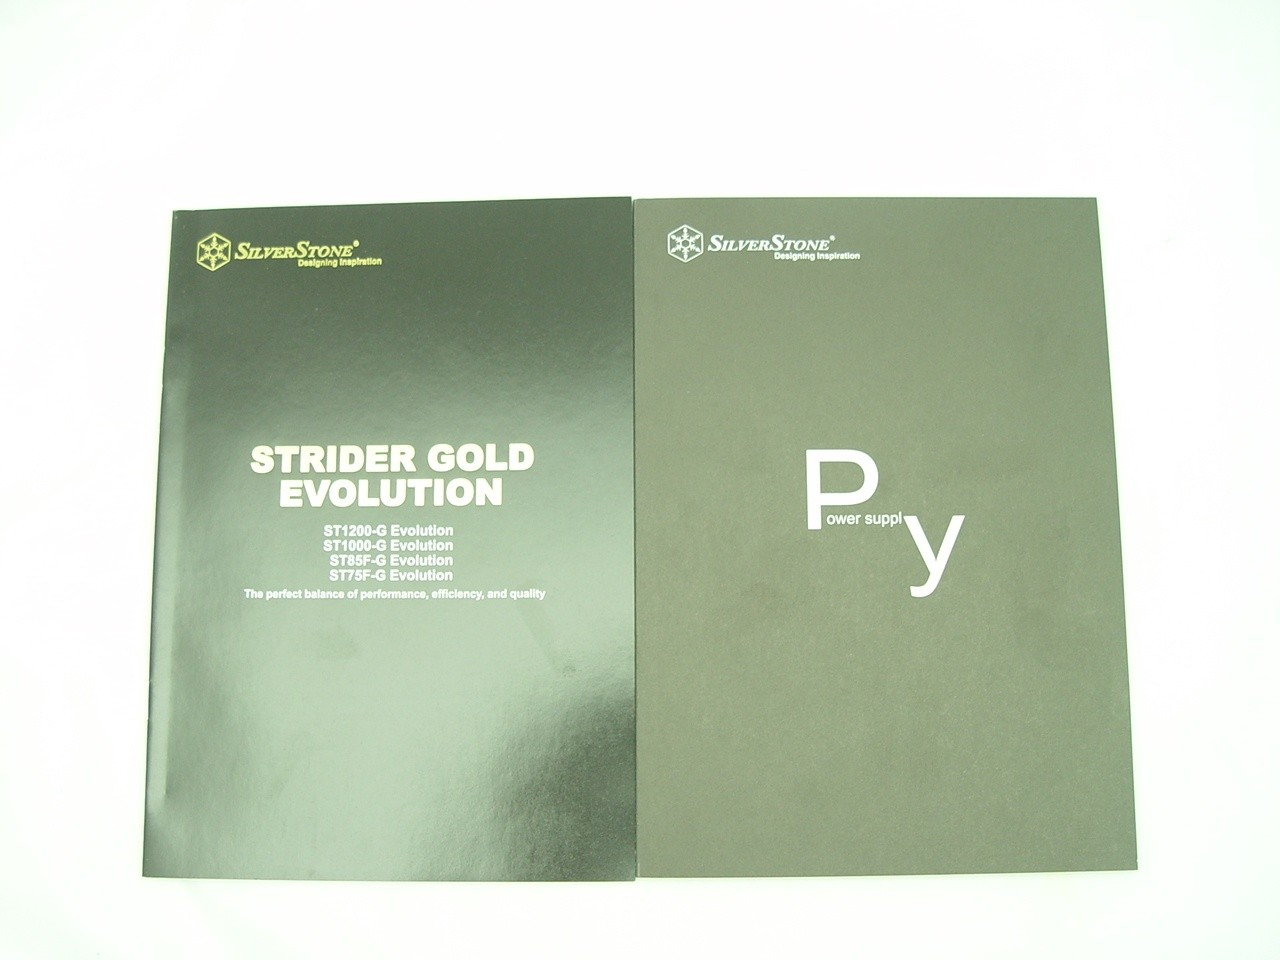 silverstone_strider_gold_evolution_1000_watt_power_supply_review